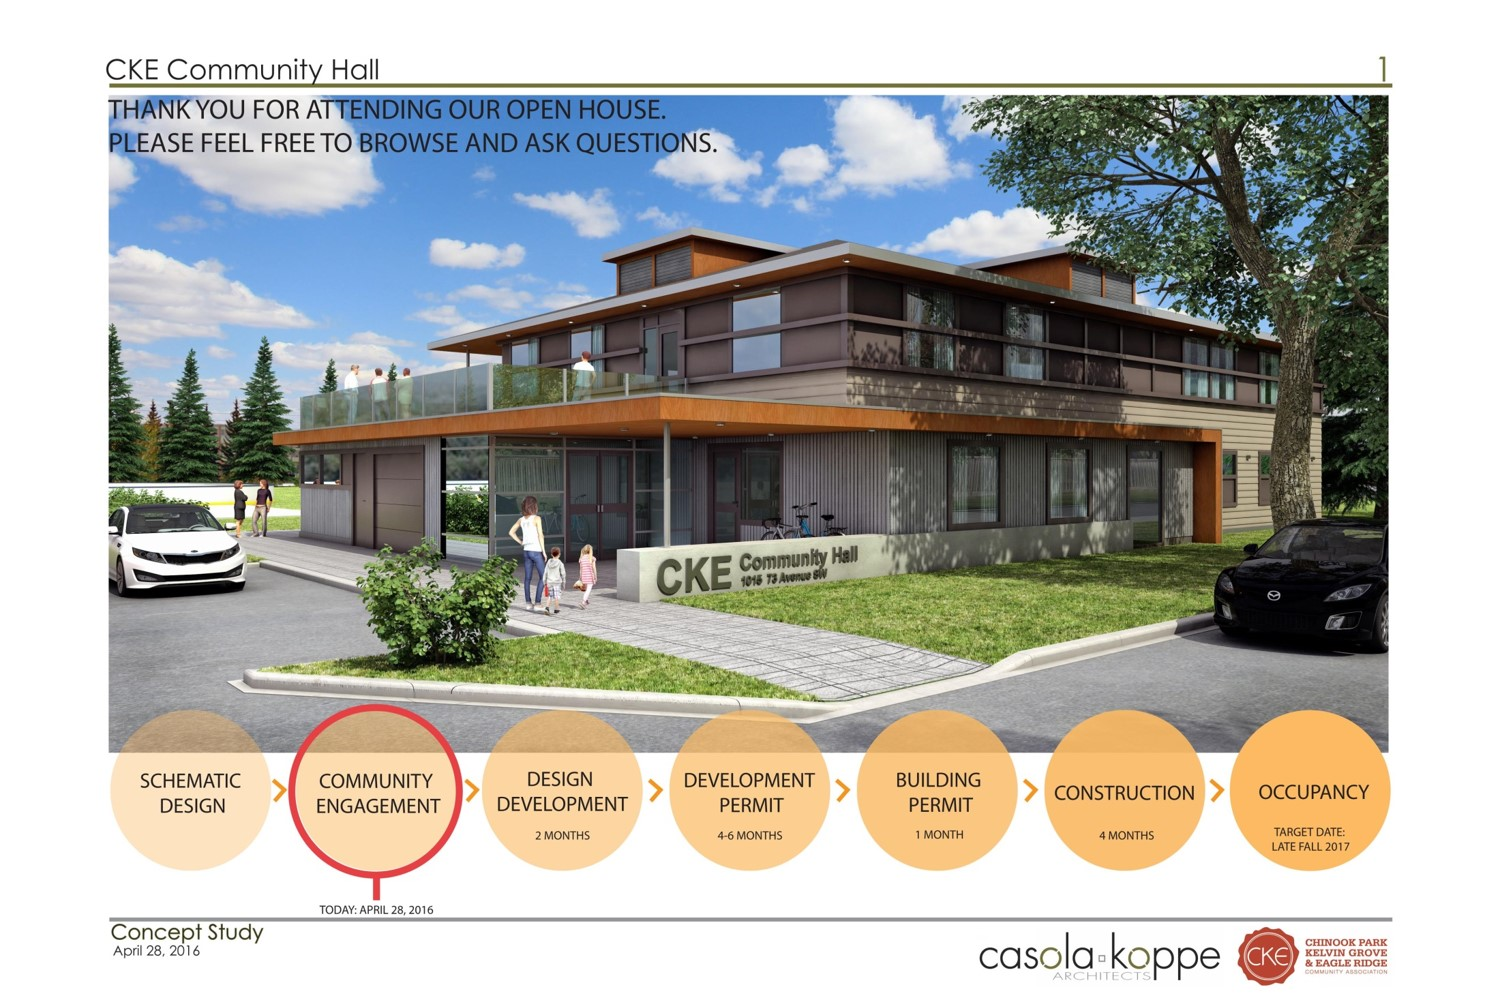 Design Concept of Hall Exterior (facing 73rd Ave SW)